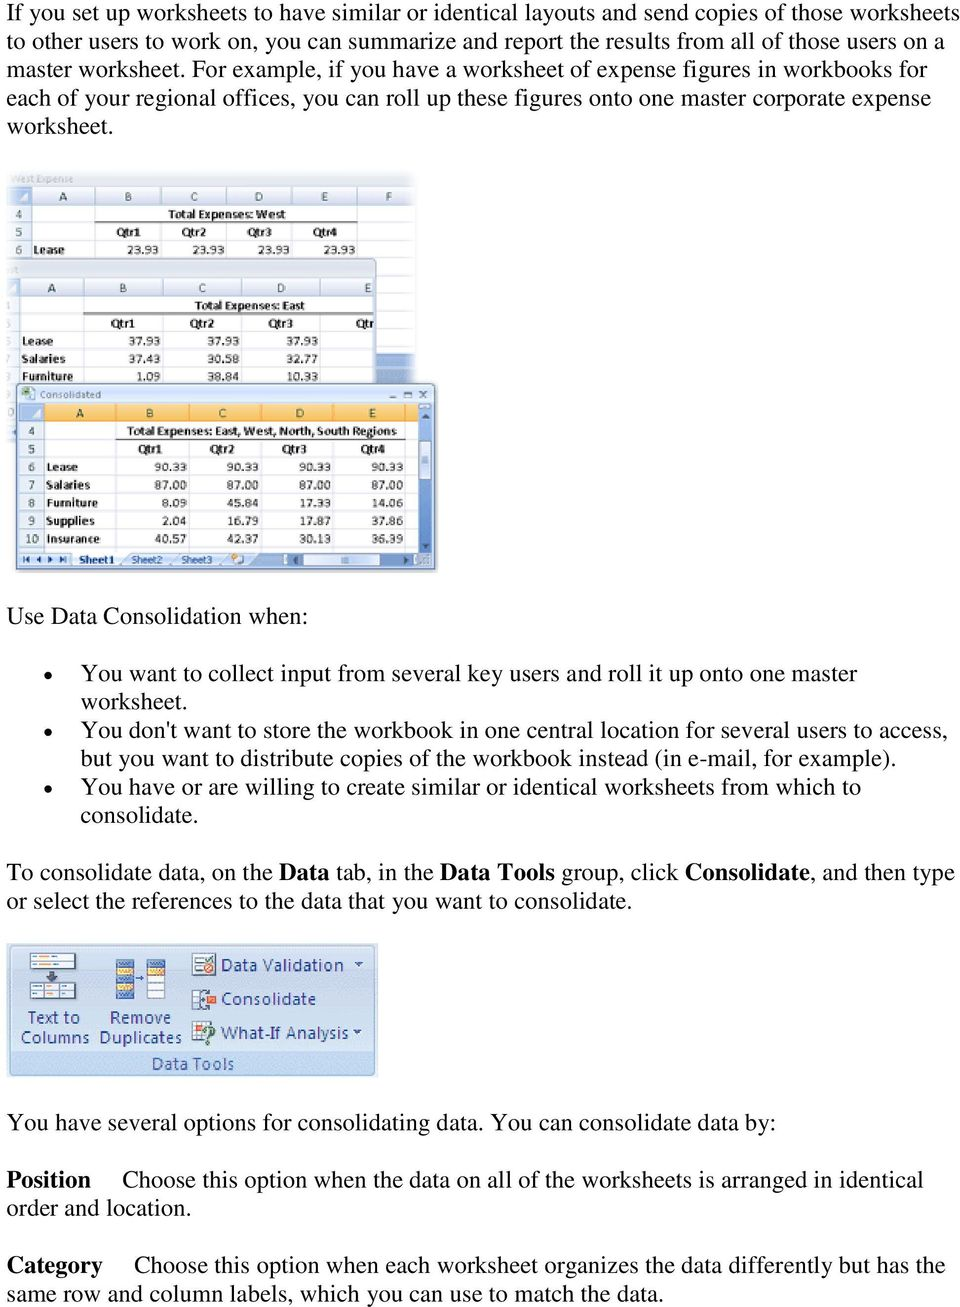 Use Data Consolidation when: You want to collect input from several key users and roll it up onto one master worksheet.